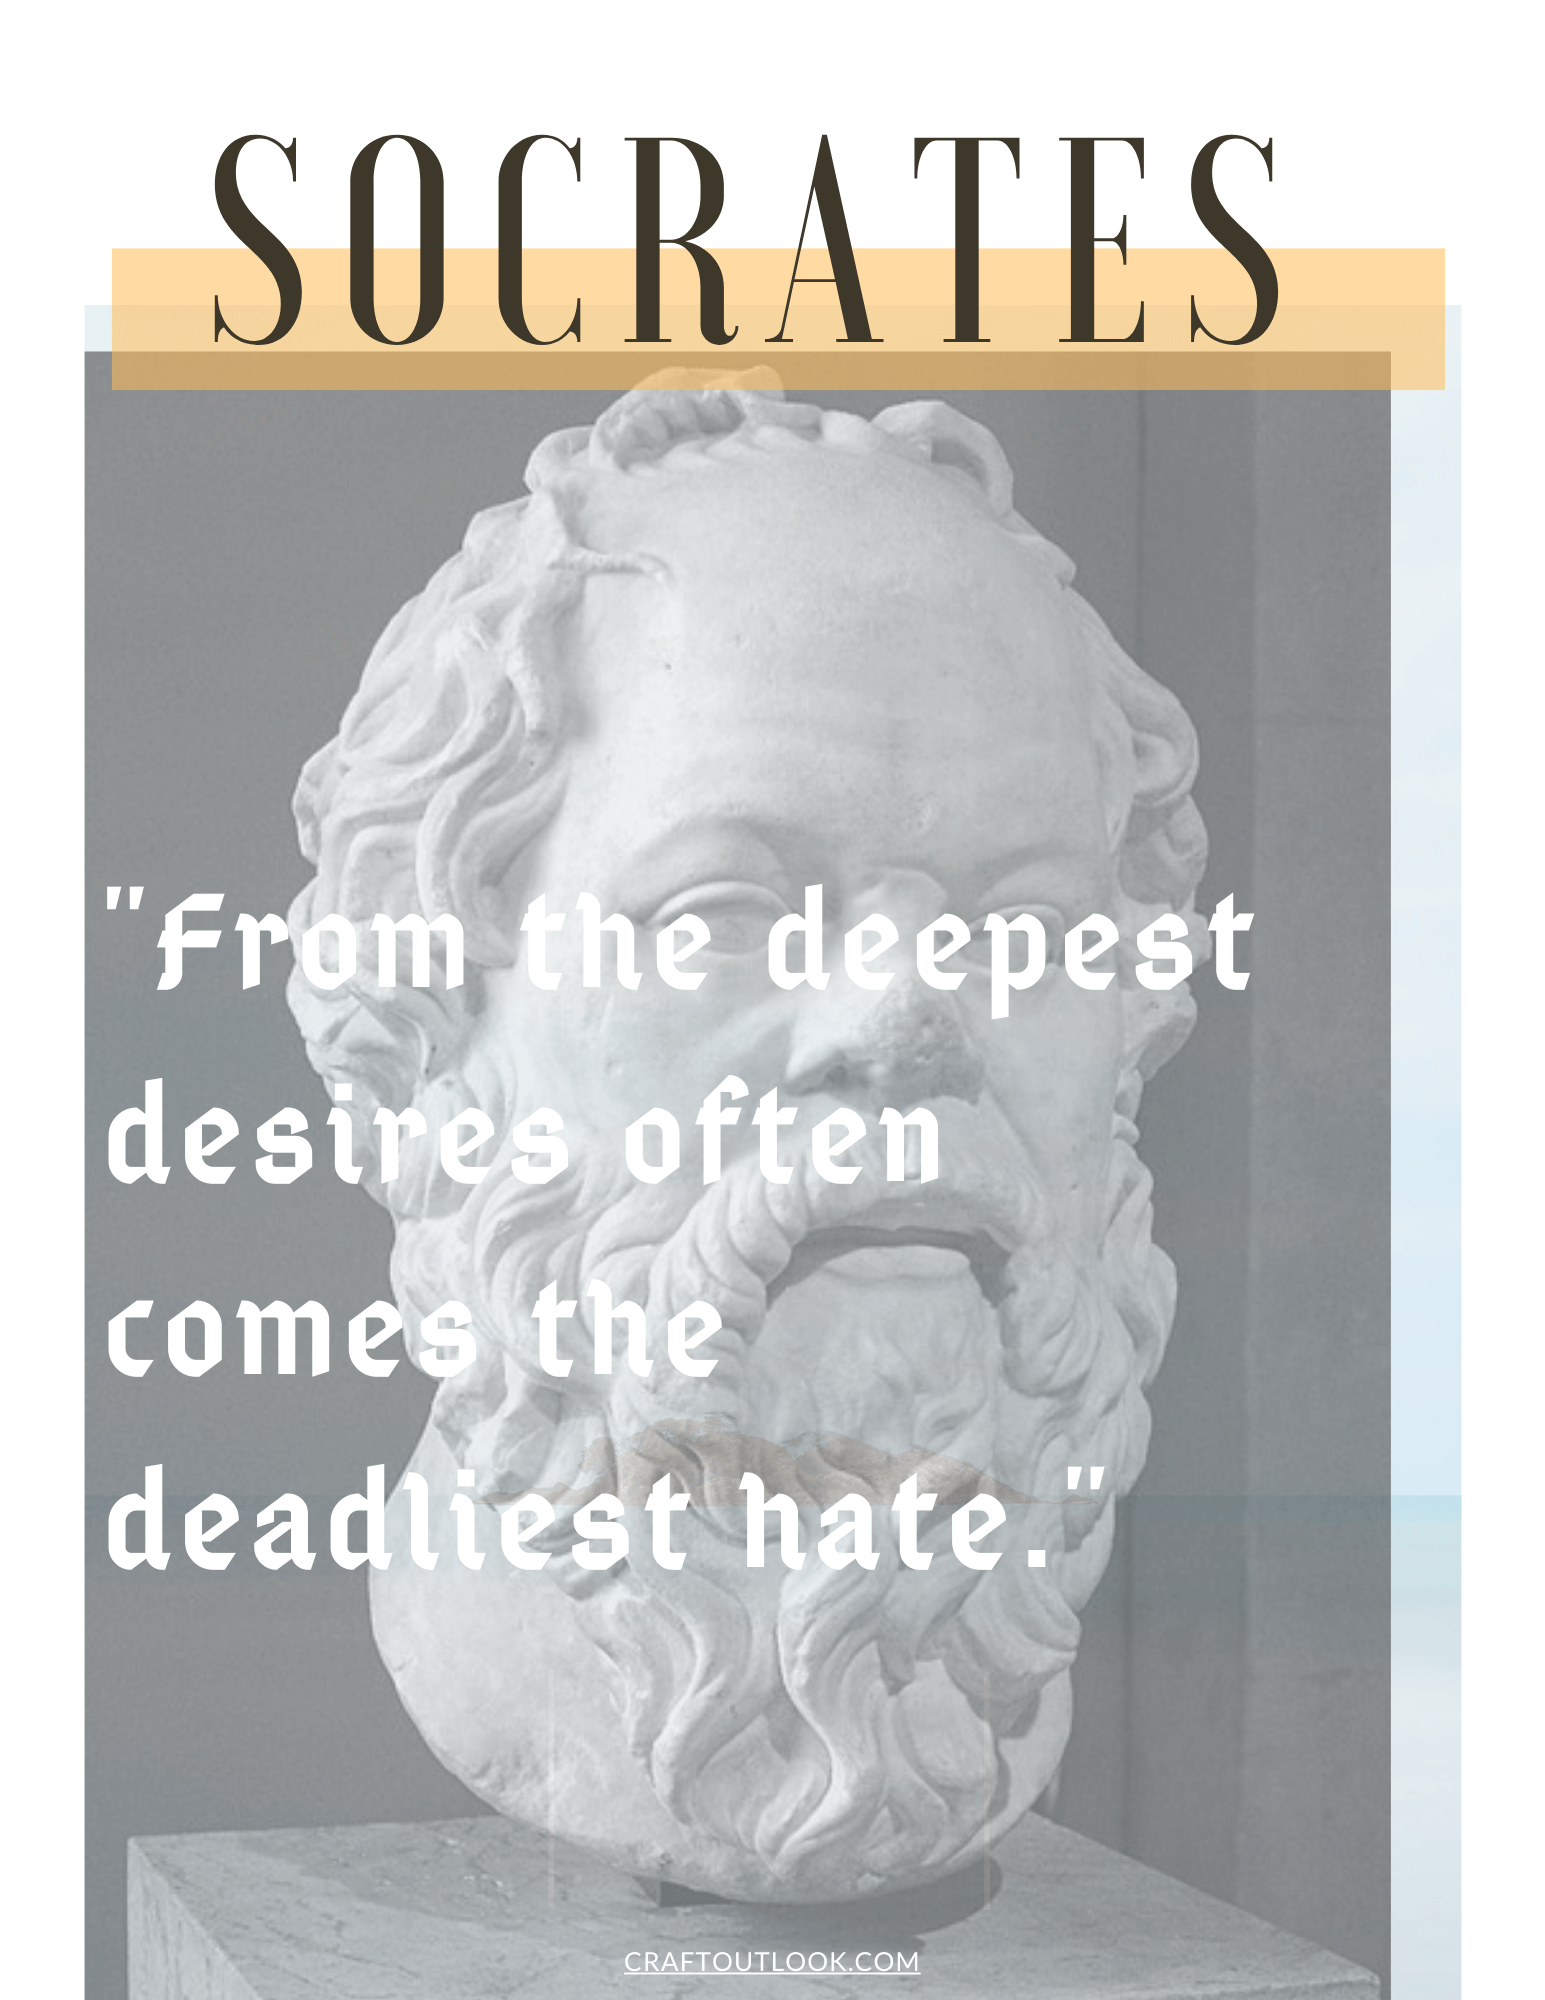 Socrates – An ancient Social Philosopher